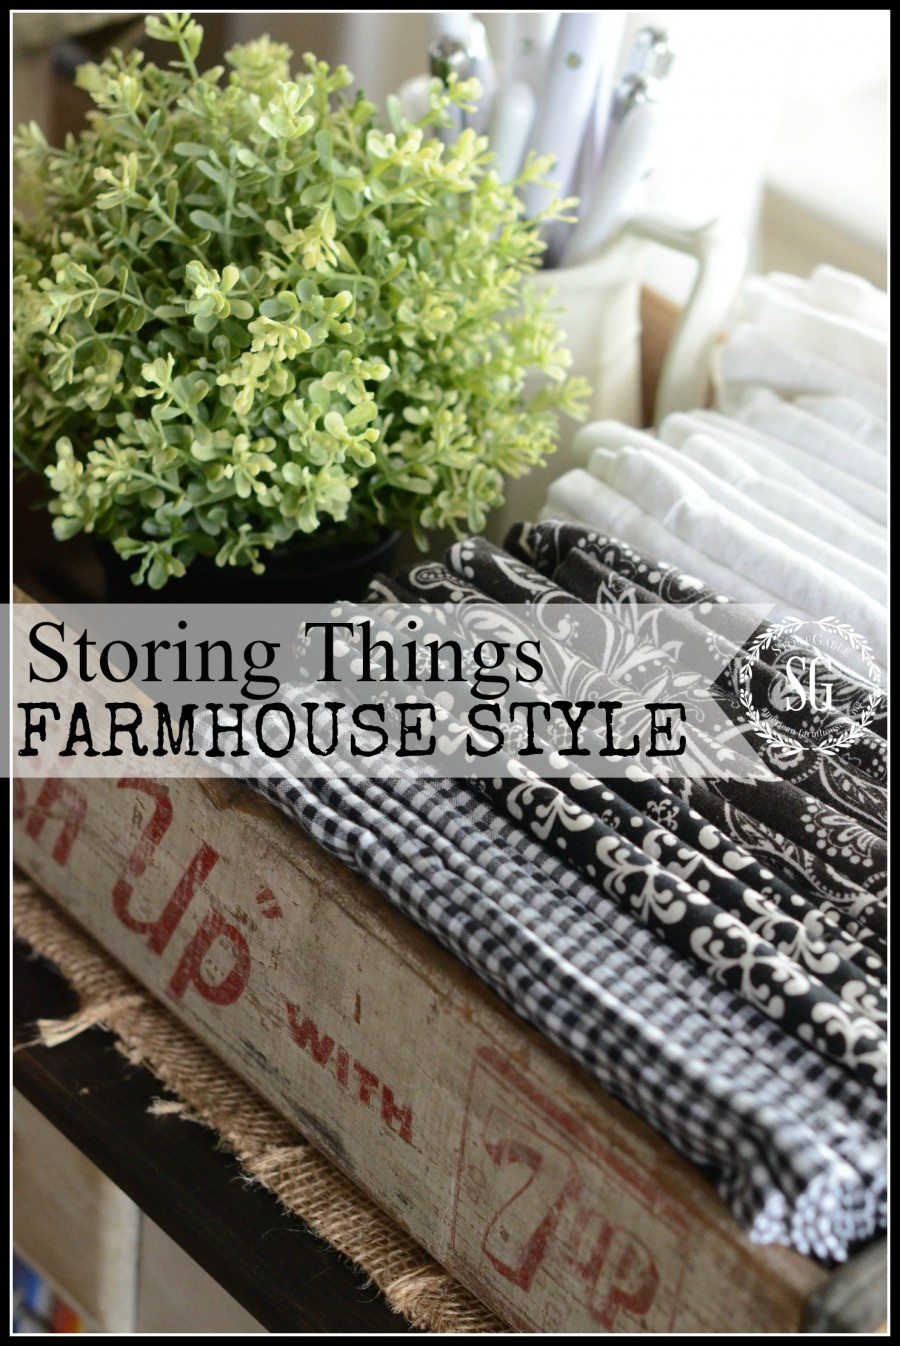 STORING THINGS FARMHOUSE STYLE- Store things you need in crates-easy access-stonegableblog.com